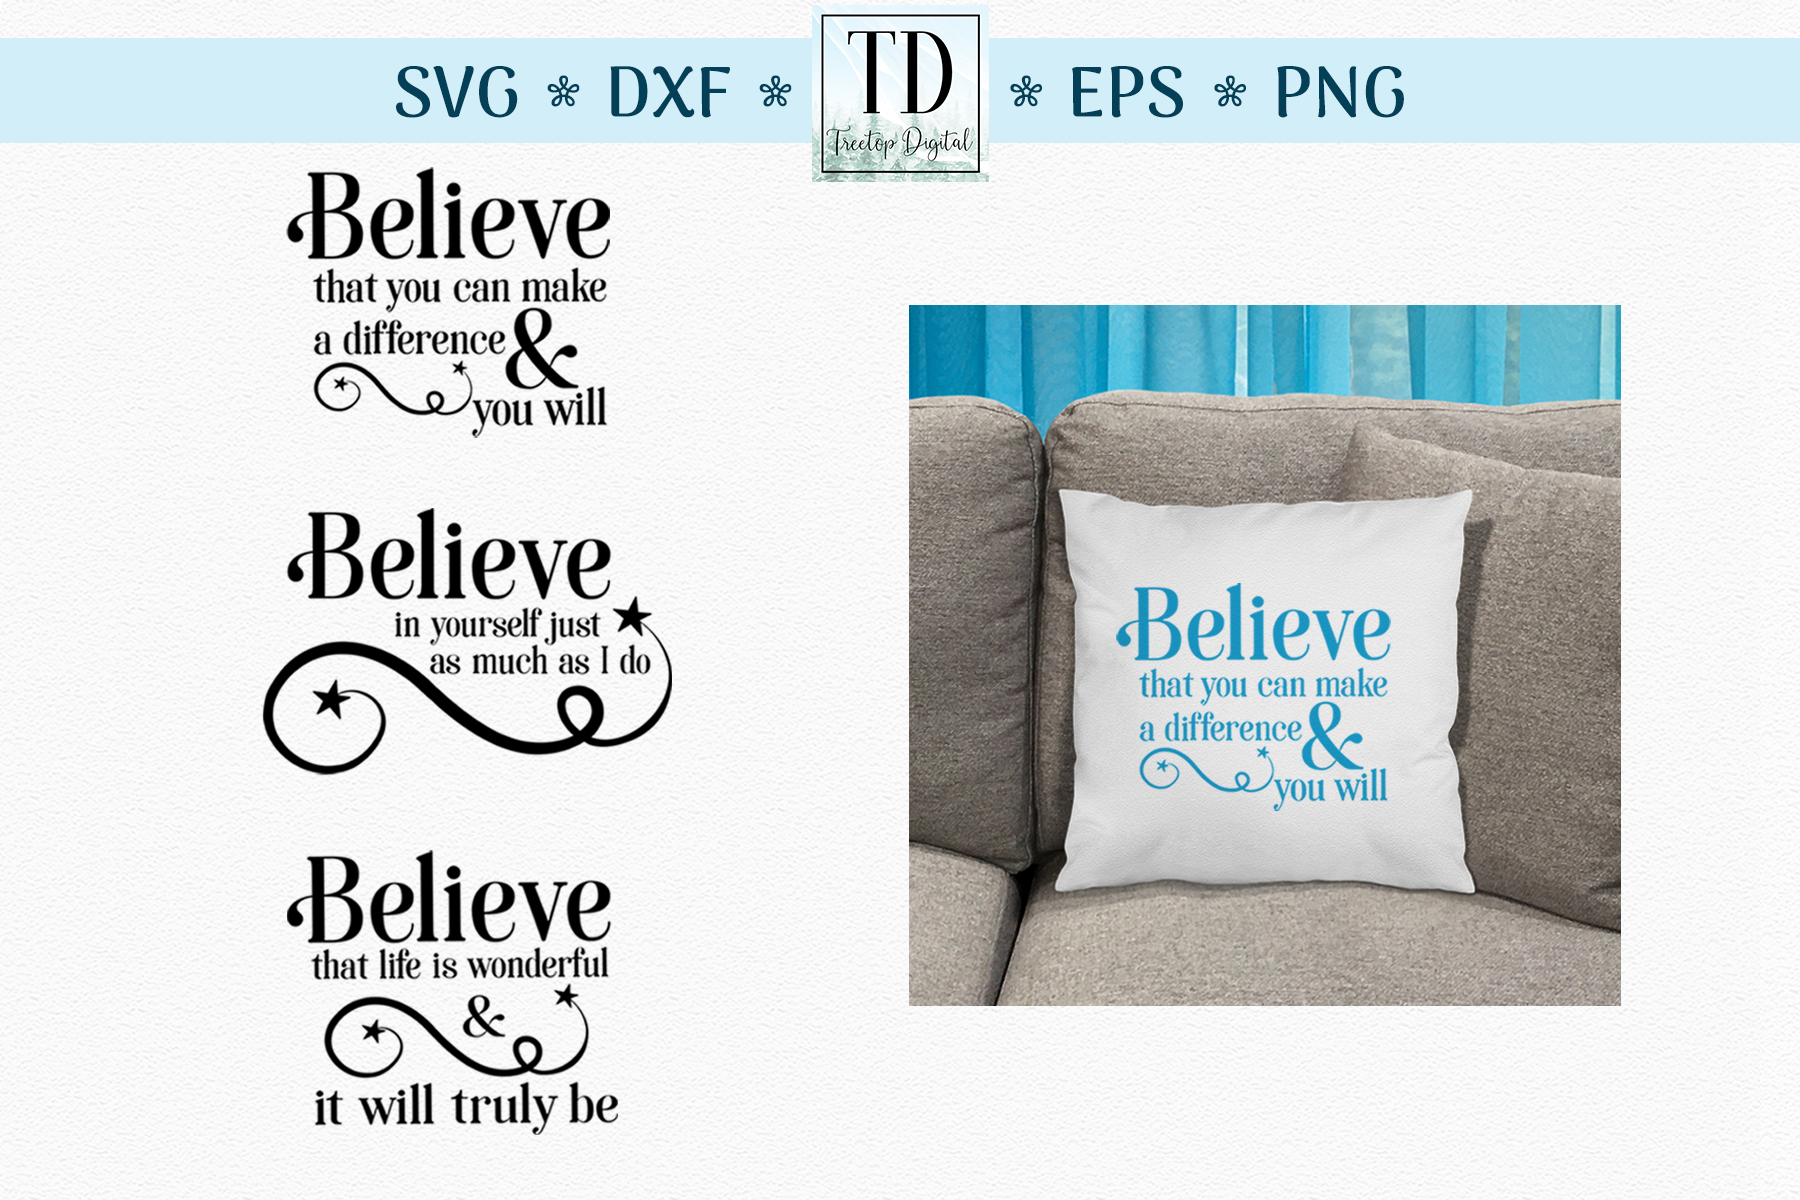 Believe Motivational Quotes - An Inspirational Set of SVG's example image 1